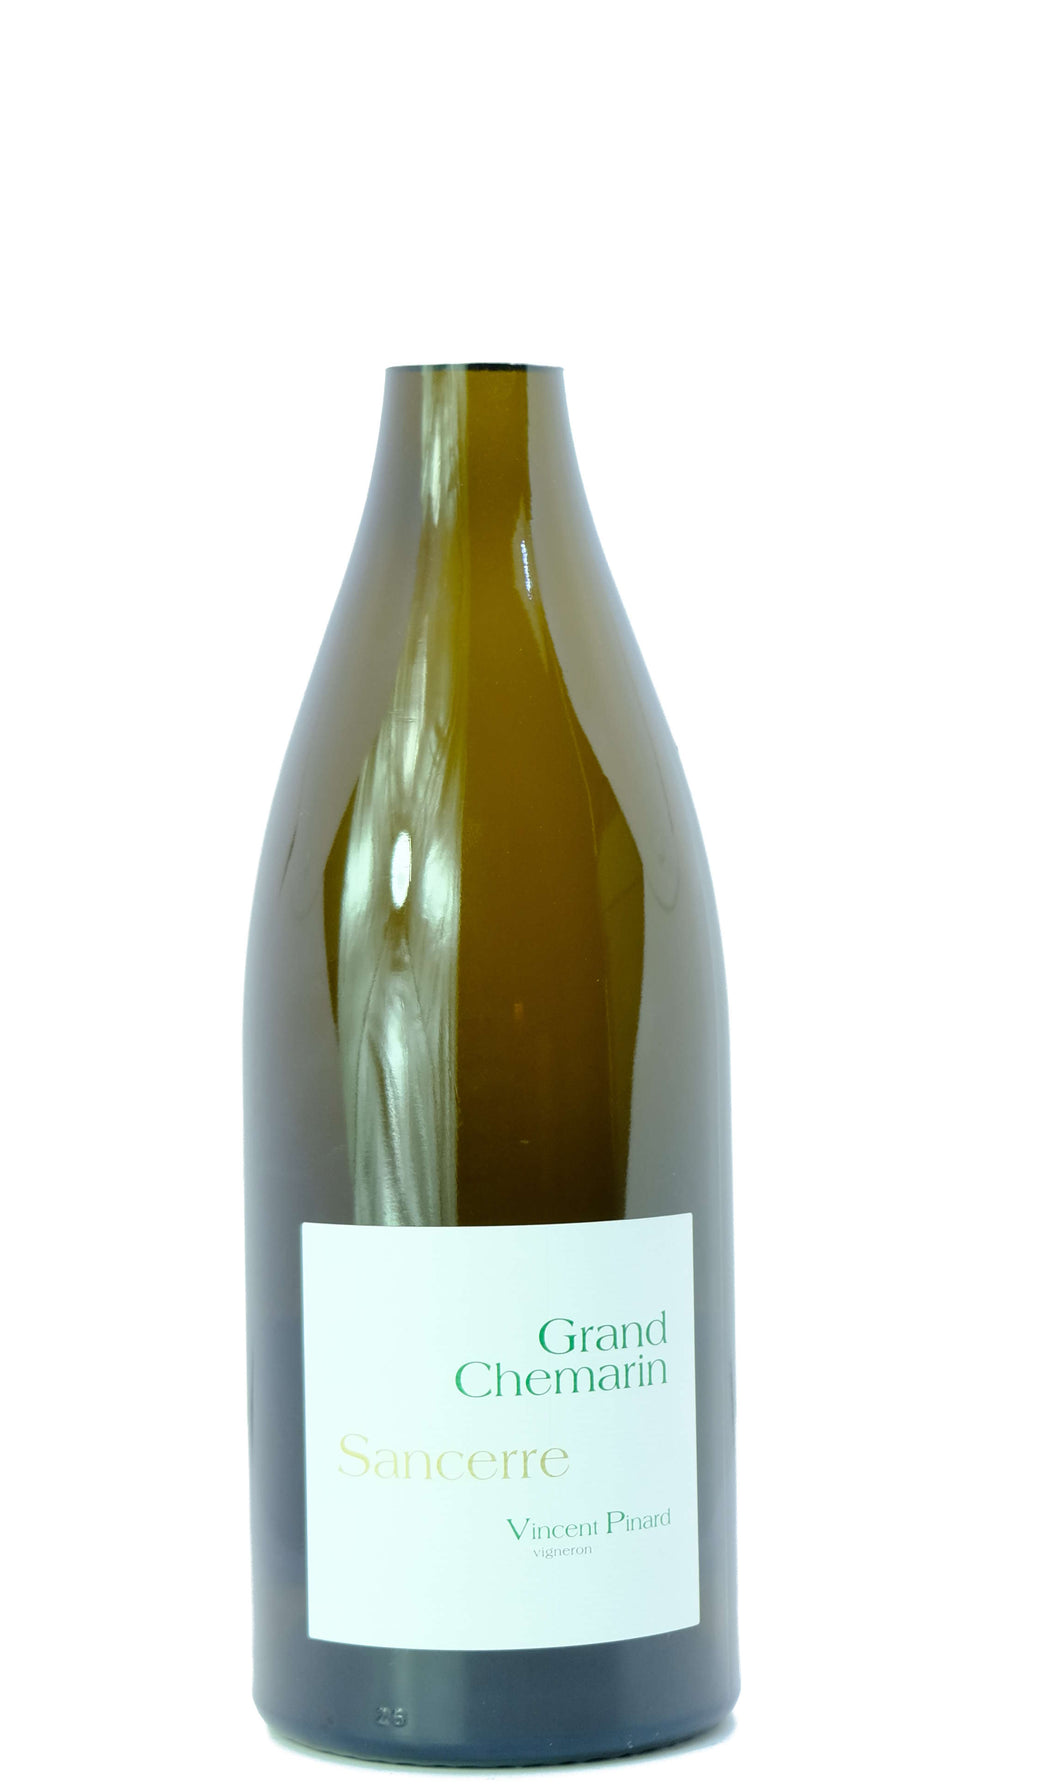 Grand Chemarin Sancerre, Vincent Pinard